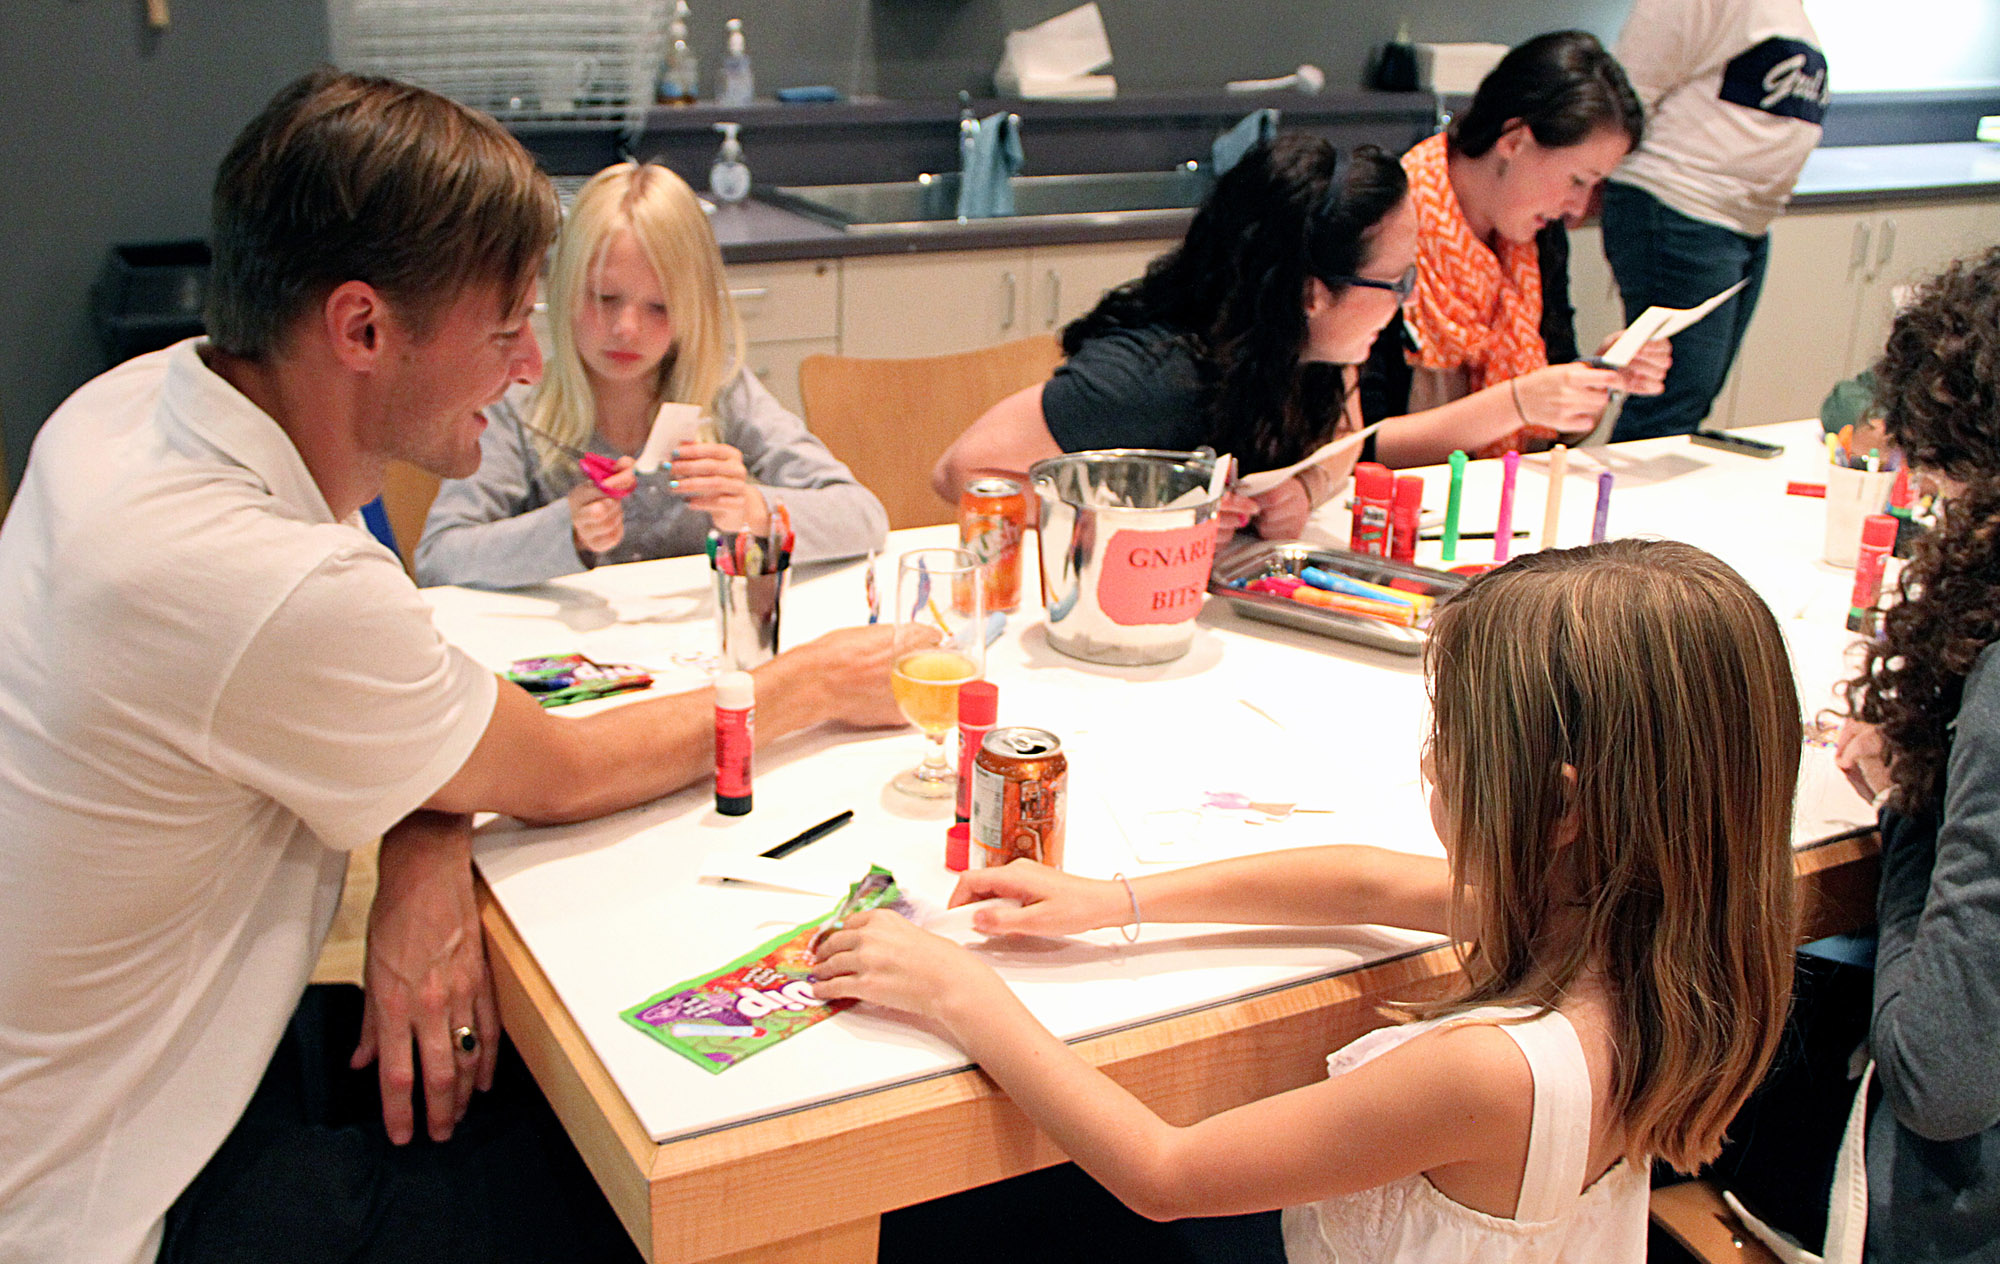 Children working together at a table